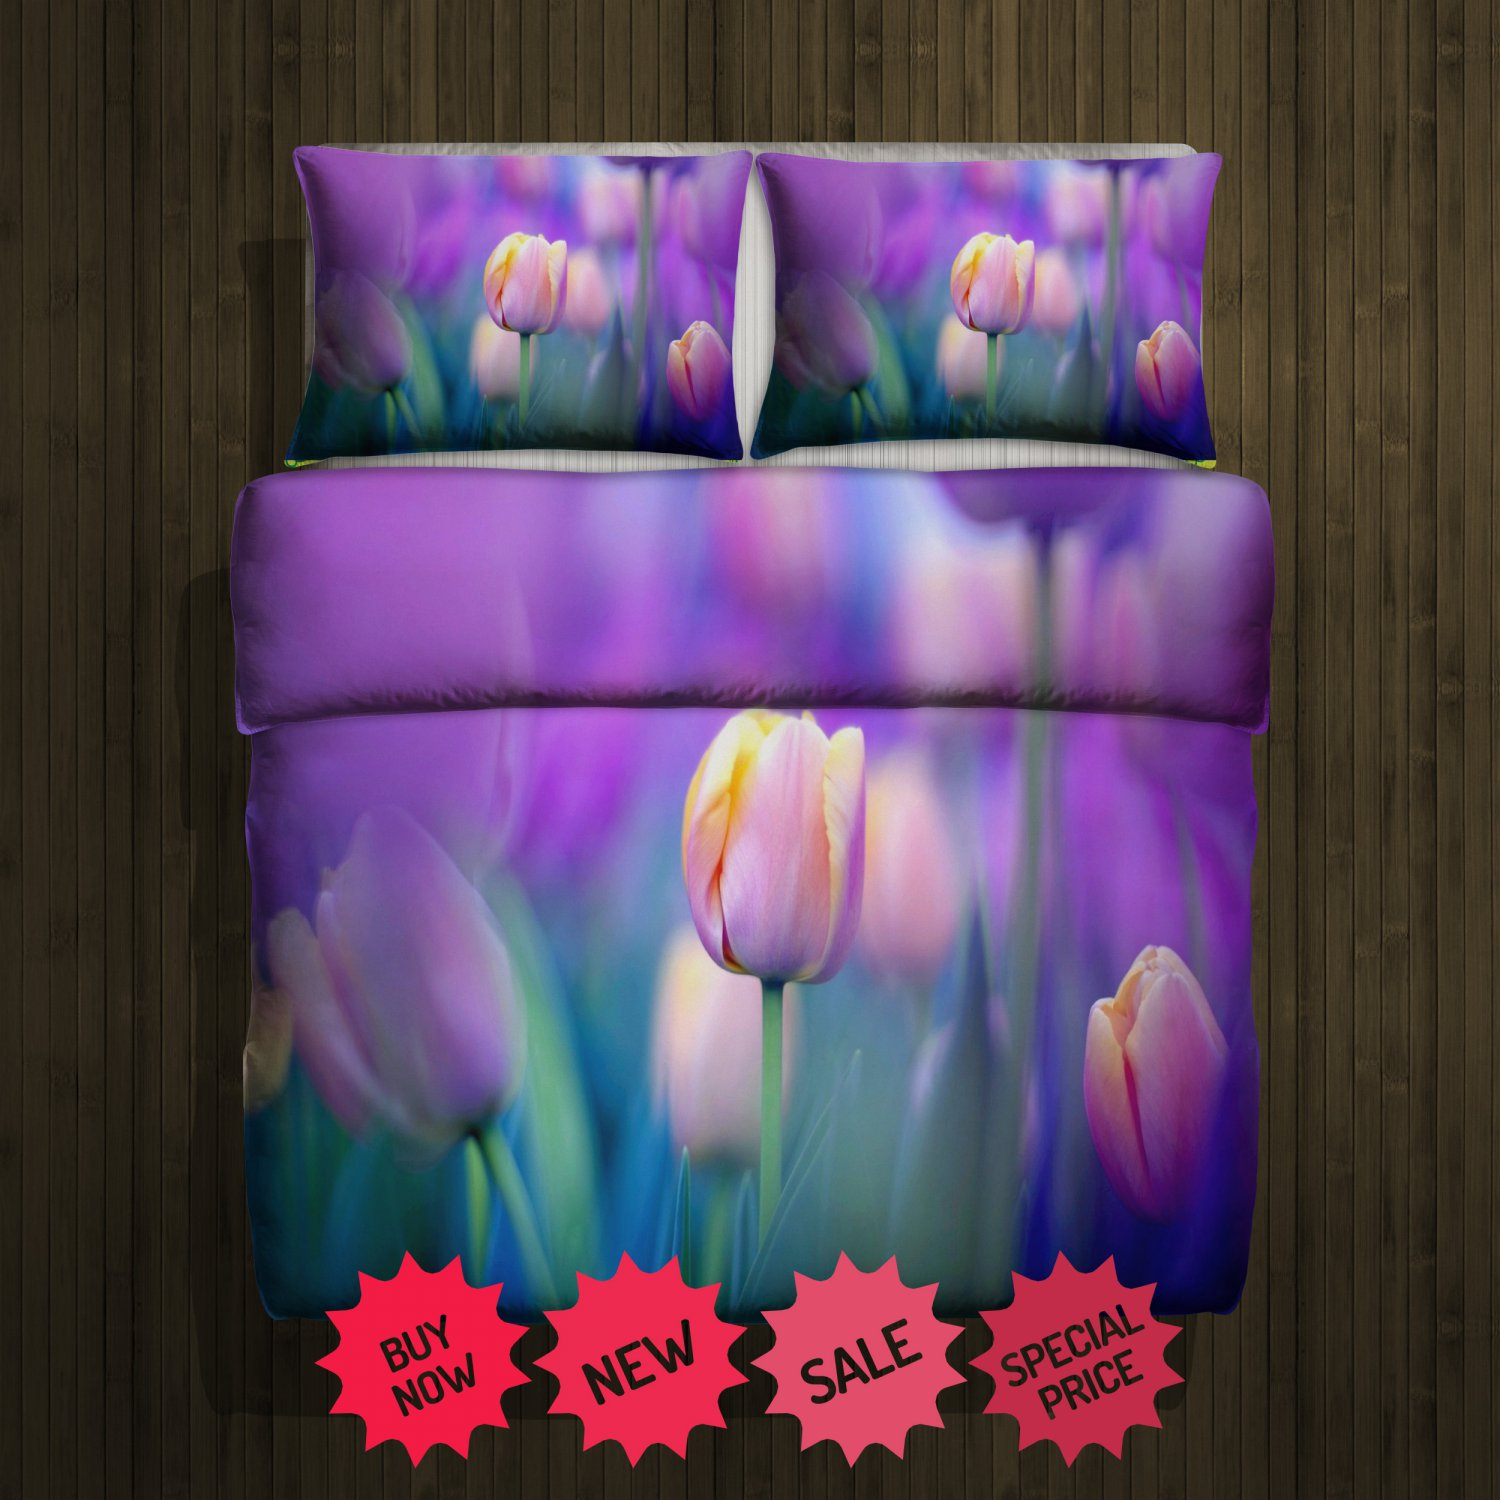 Tulip 3 Blanket Large & 2 Pillow Cases #98650415 ,98650455(2)